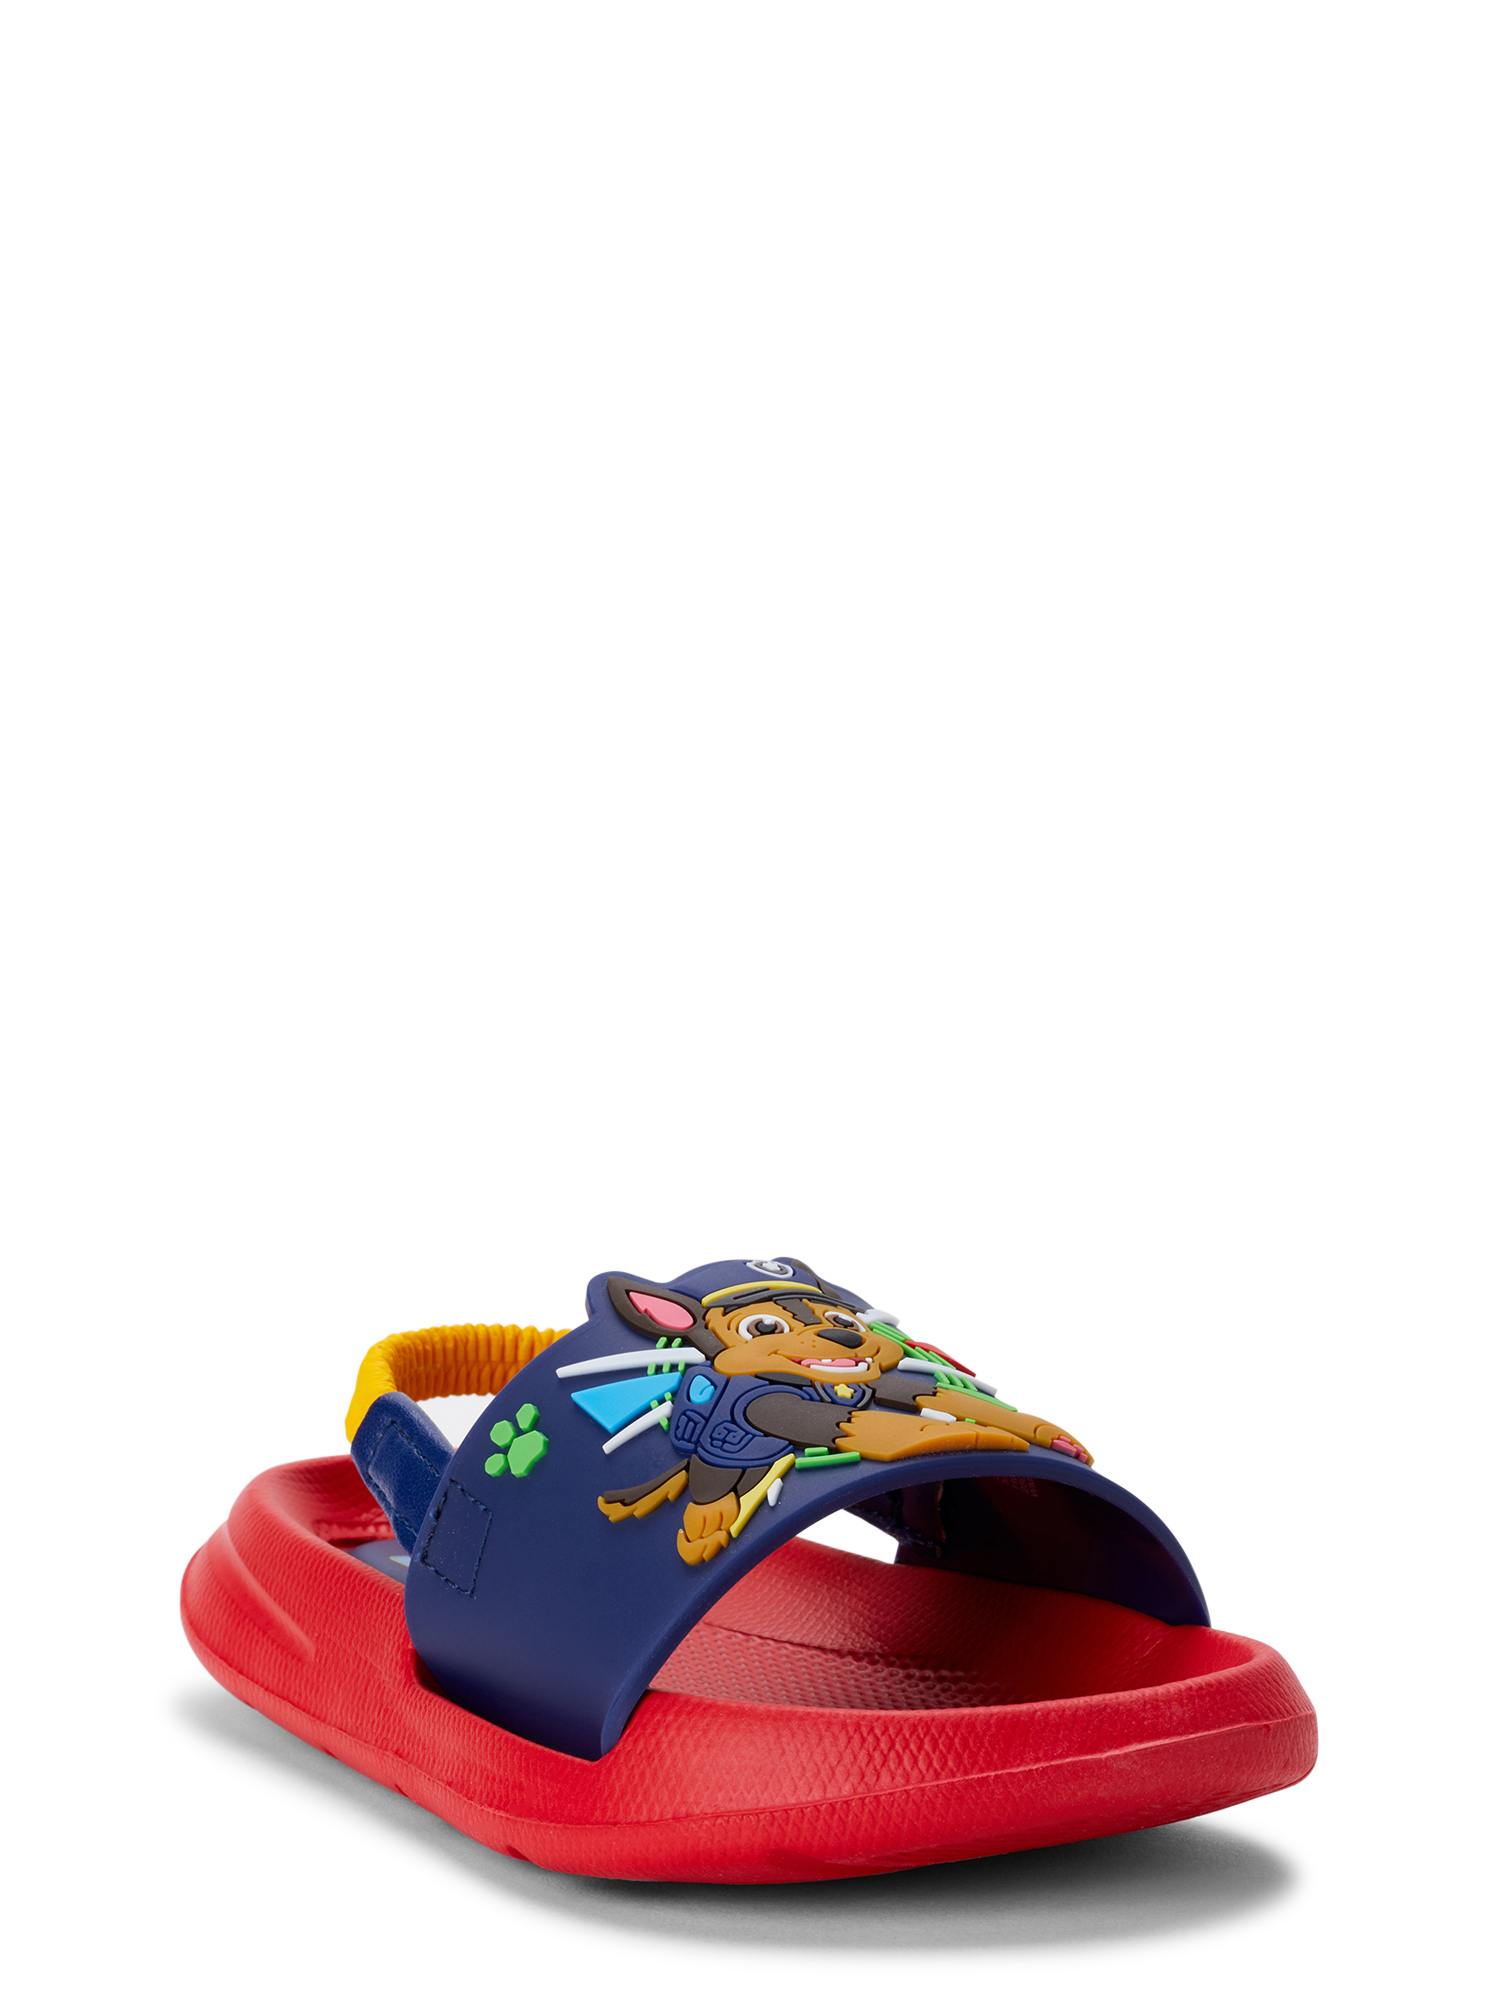 Boy/'s Toddler PAW PATROL Blue Athletic Casual Sandals//Flip Flops//Shoes NEW